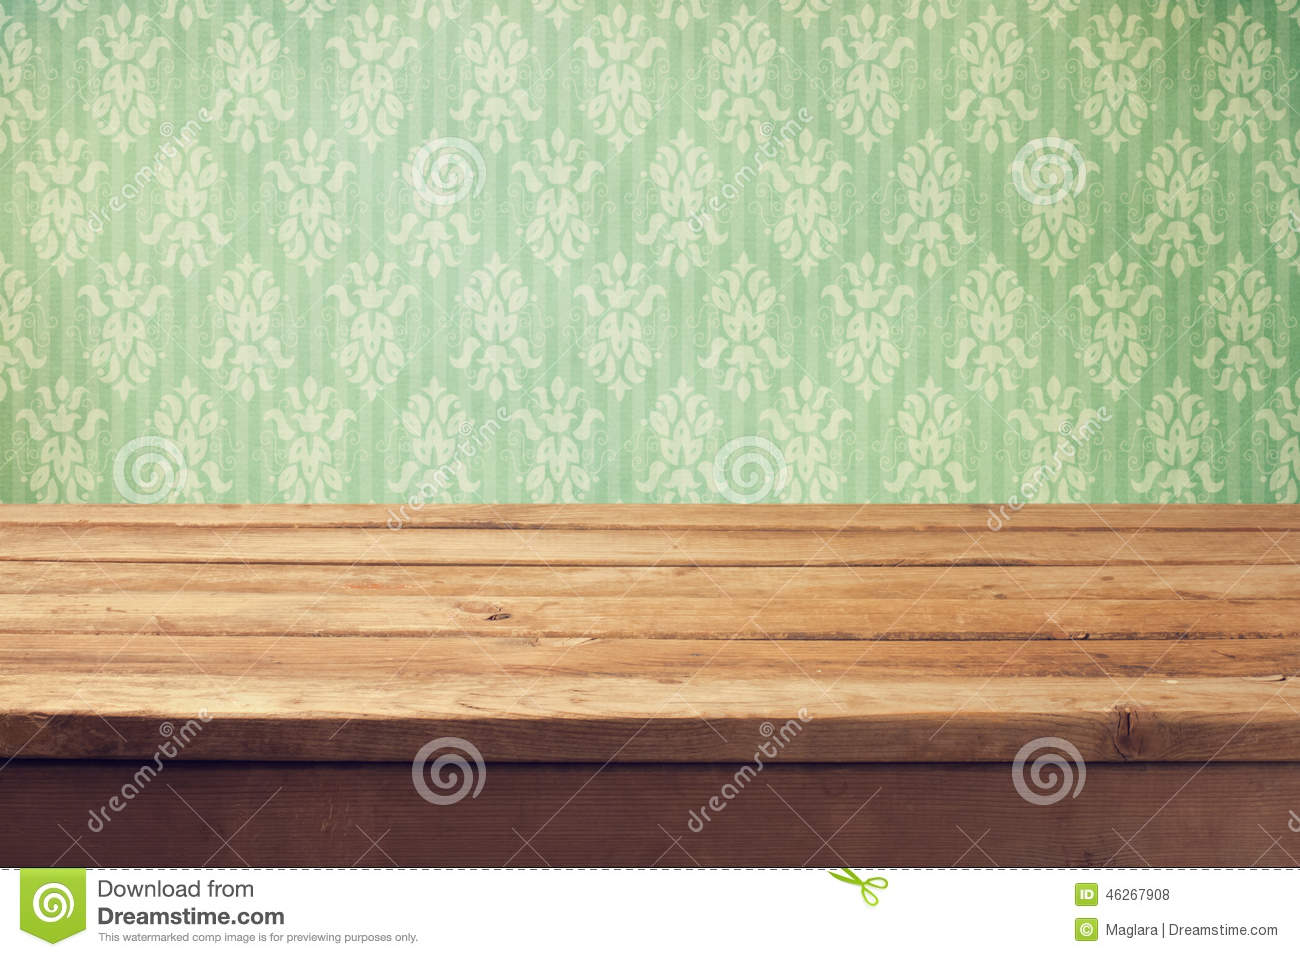 Download Vintage Background With Wooden Deck Table And Classical Wallpaper Stock Photo